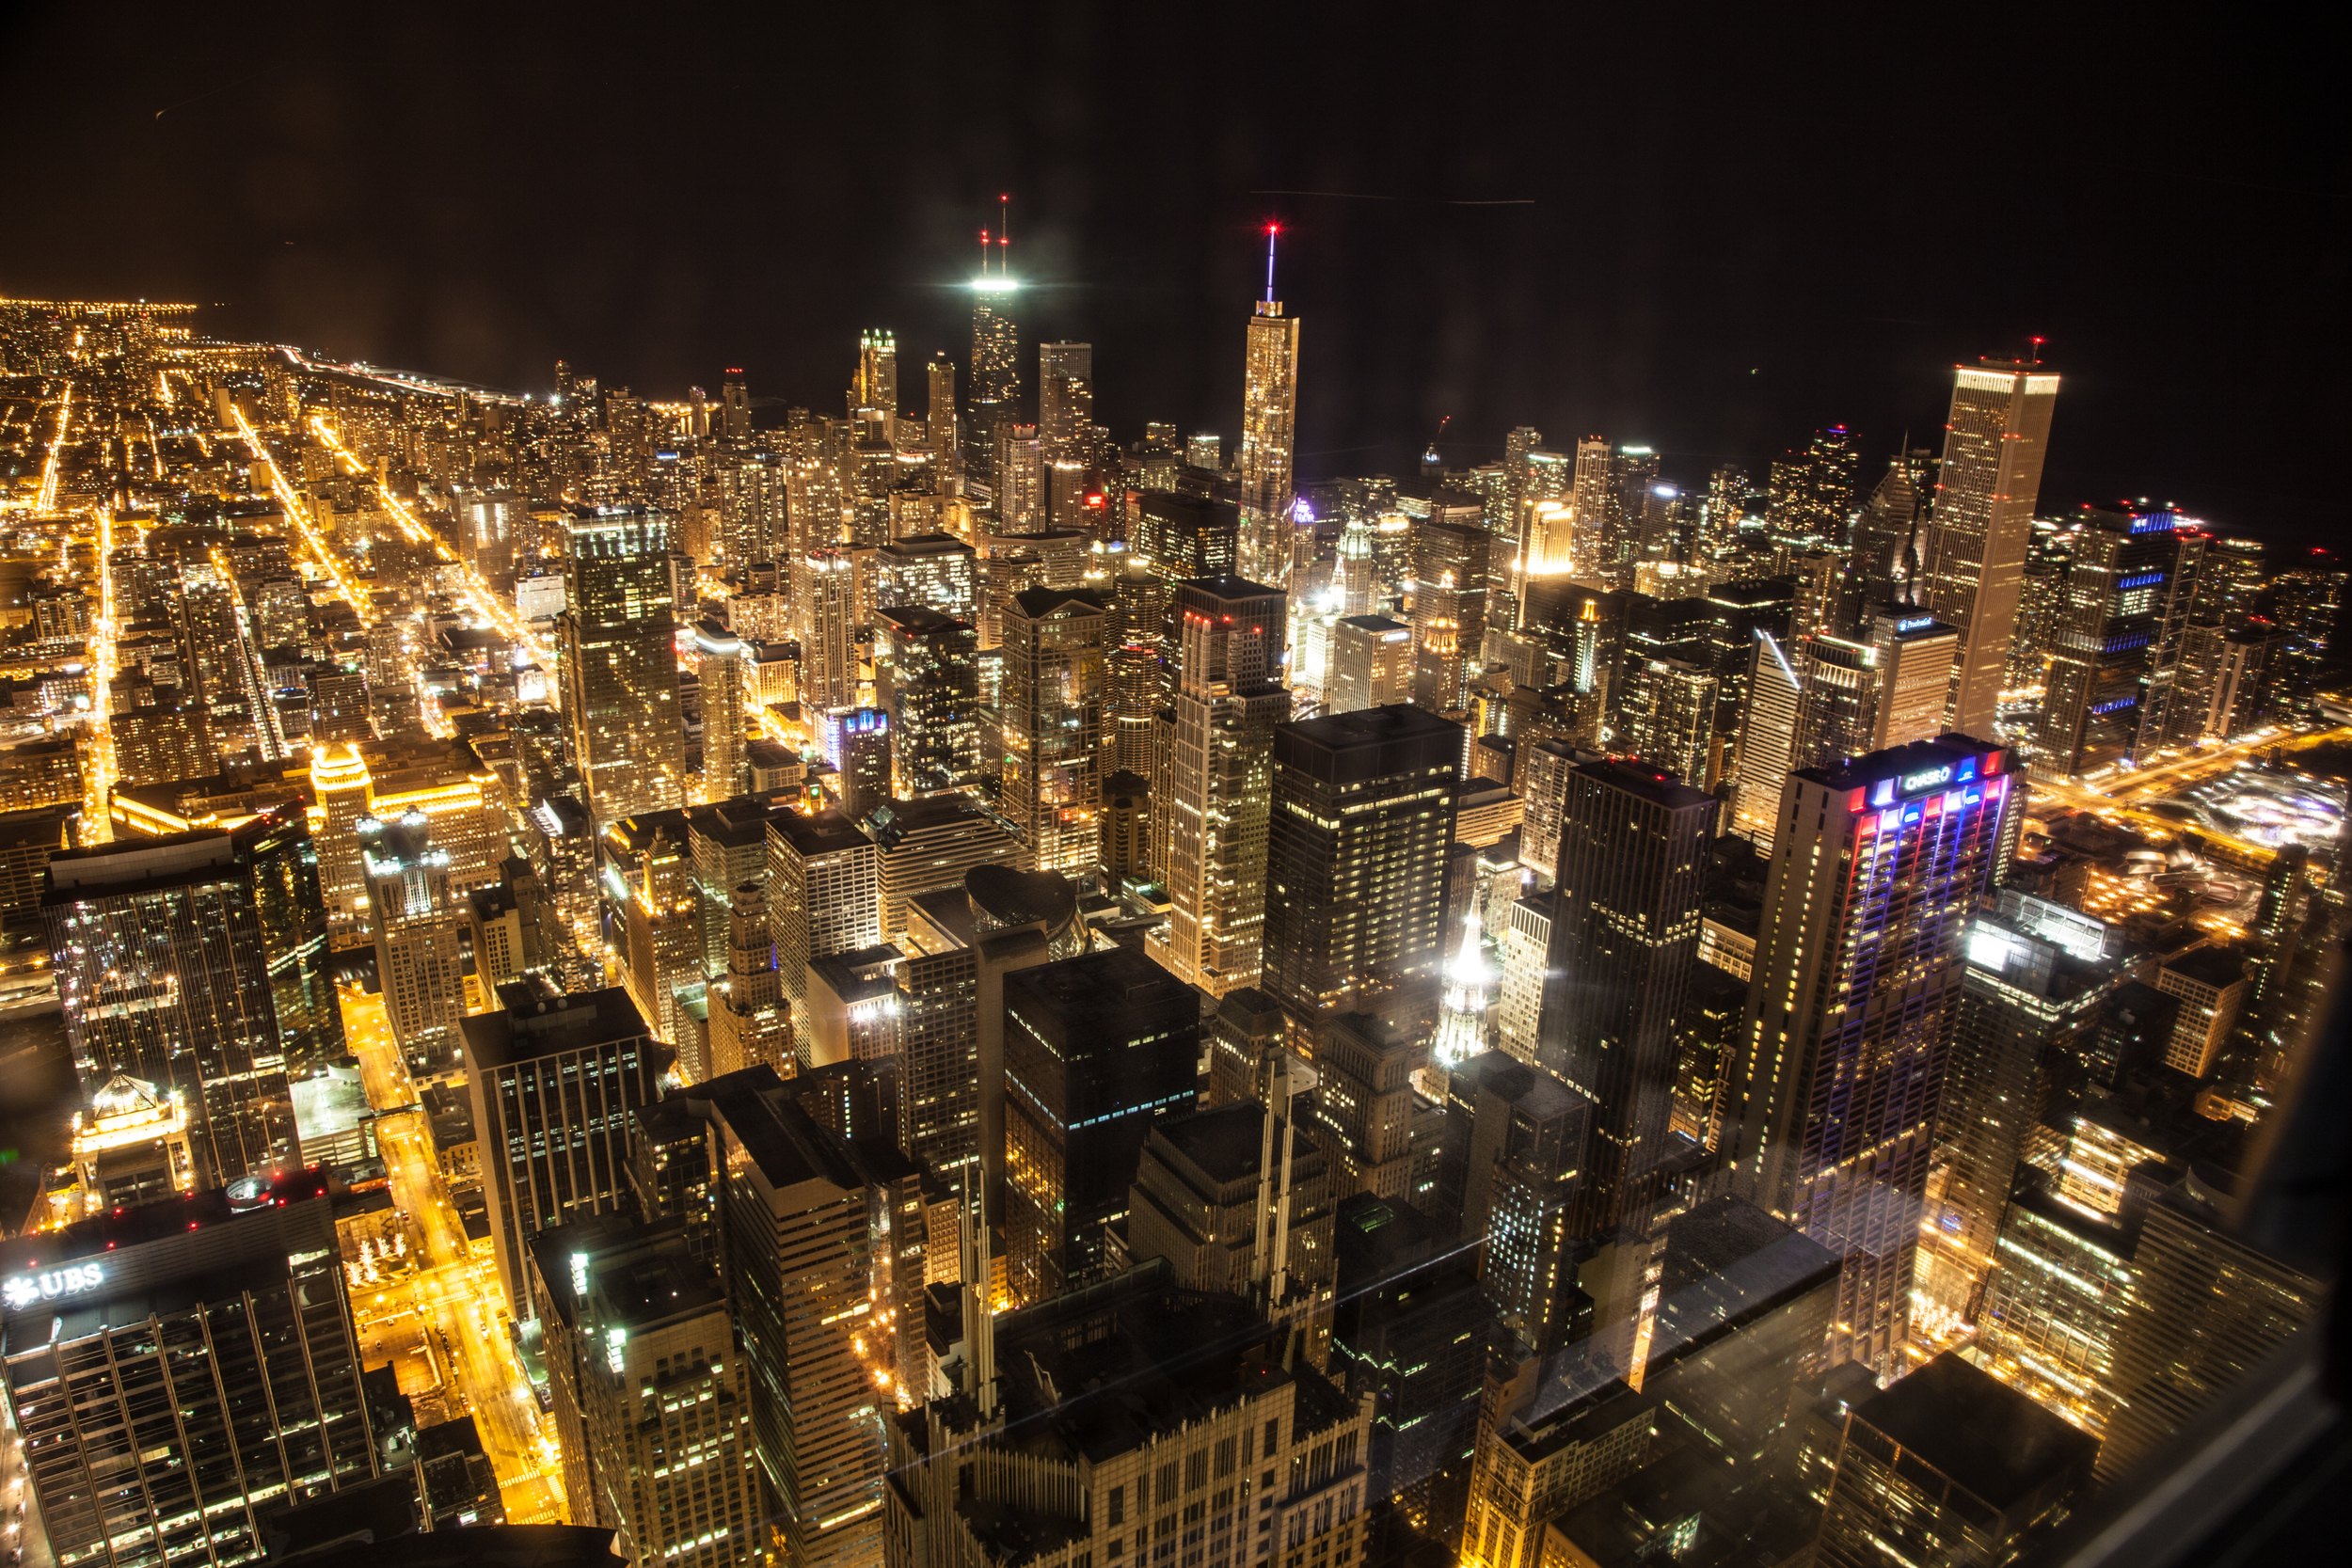 This is the view from the Sky deck at the top of Willis Tower in Chicago